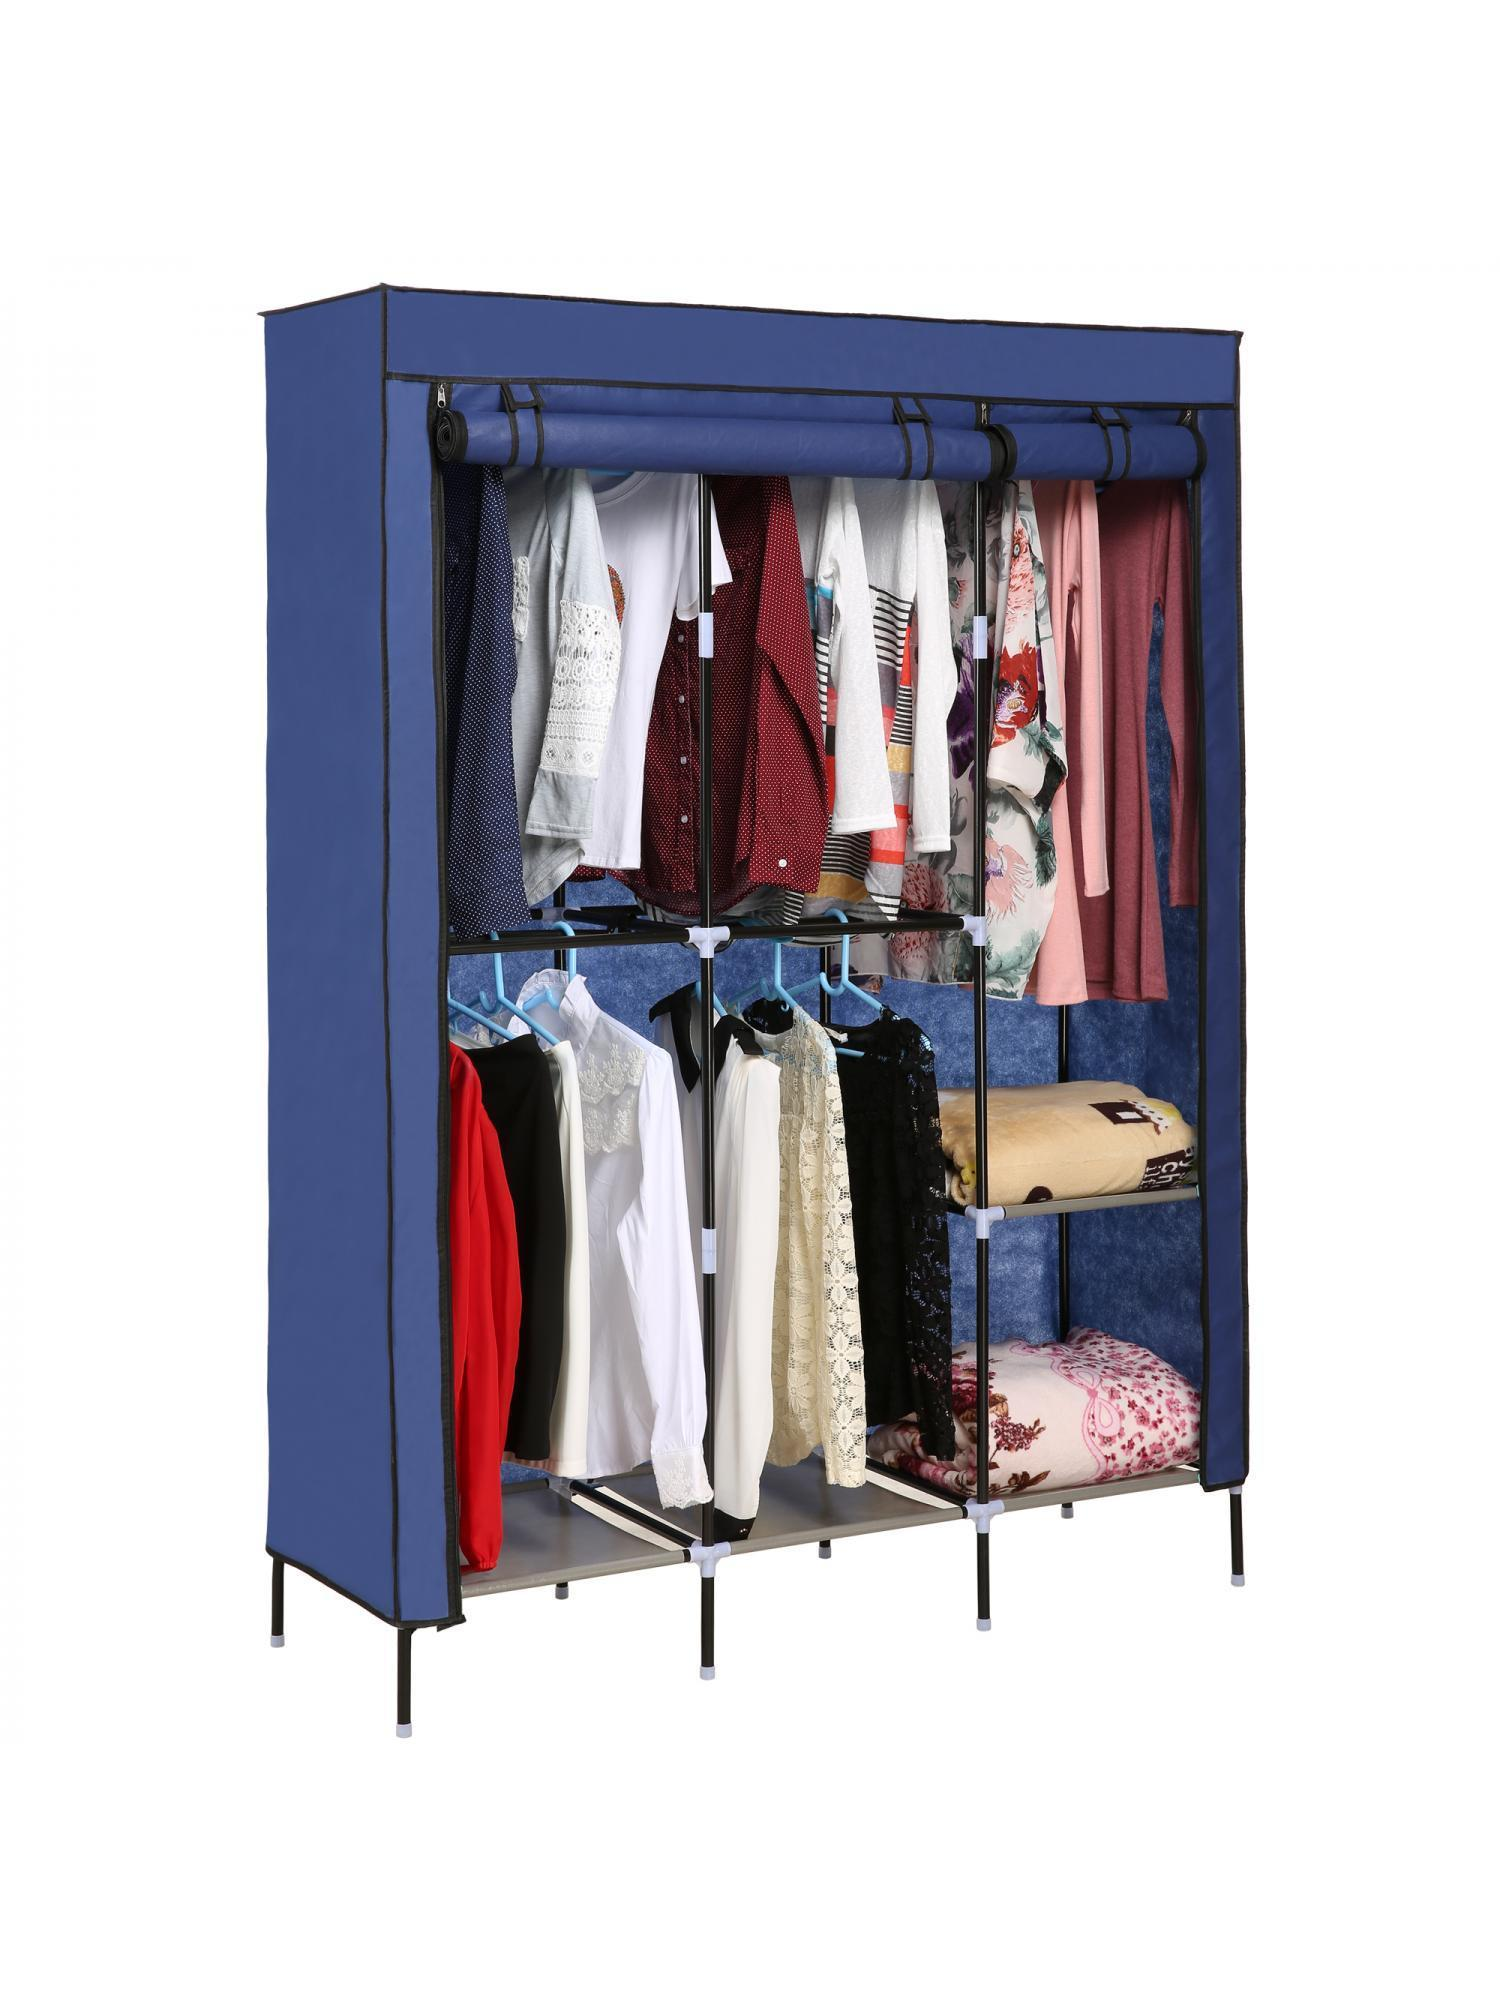 Folding Wardrobe Cabinets Clothes Closet Storage Organizer Rack With Covered